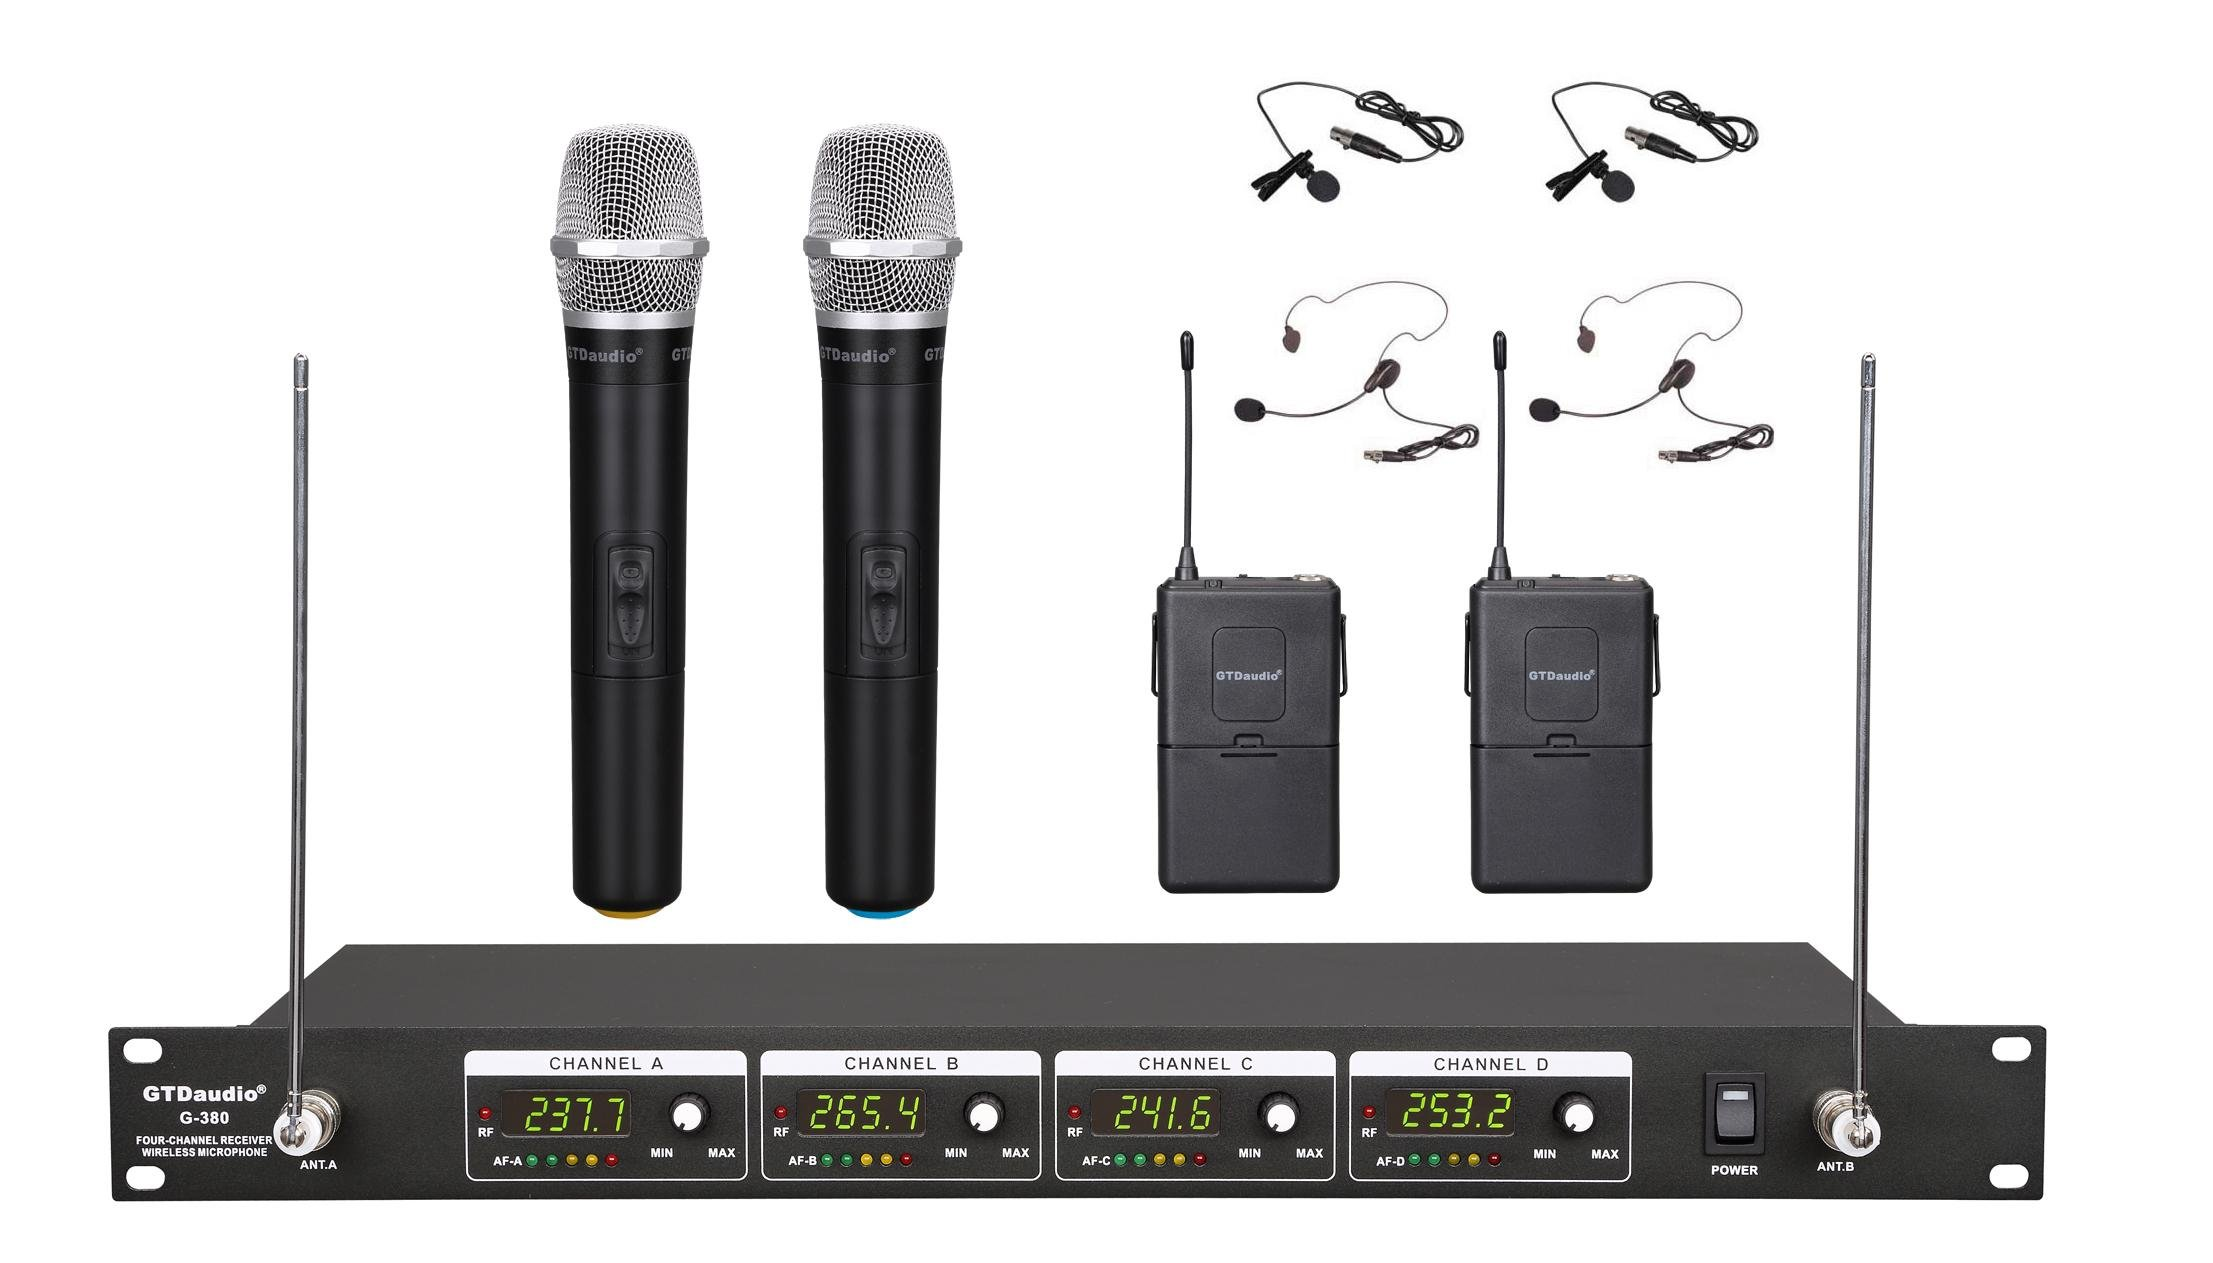 gtd audio g 380hl vhf wireless microphone system with 2 handheld 2 headset 700371825201 ebay. Black Bedroom Furniture Sets. Home Design Ideas